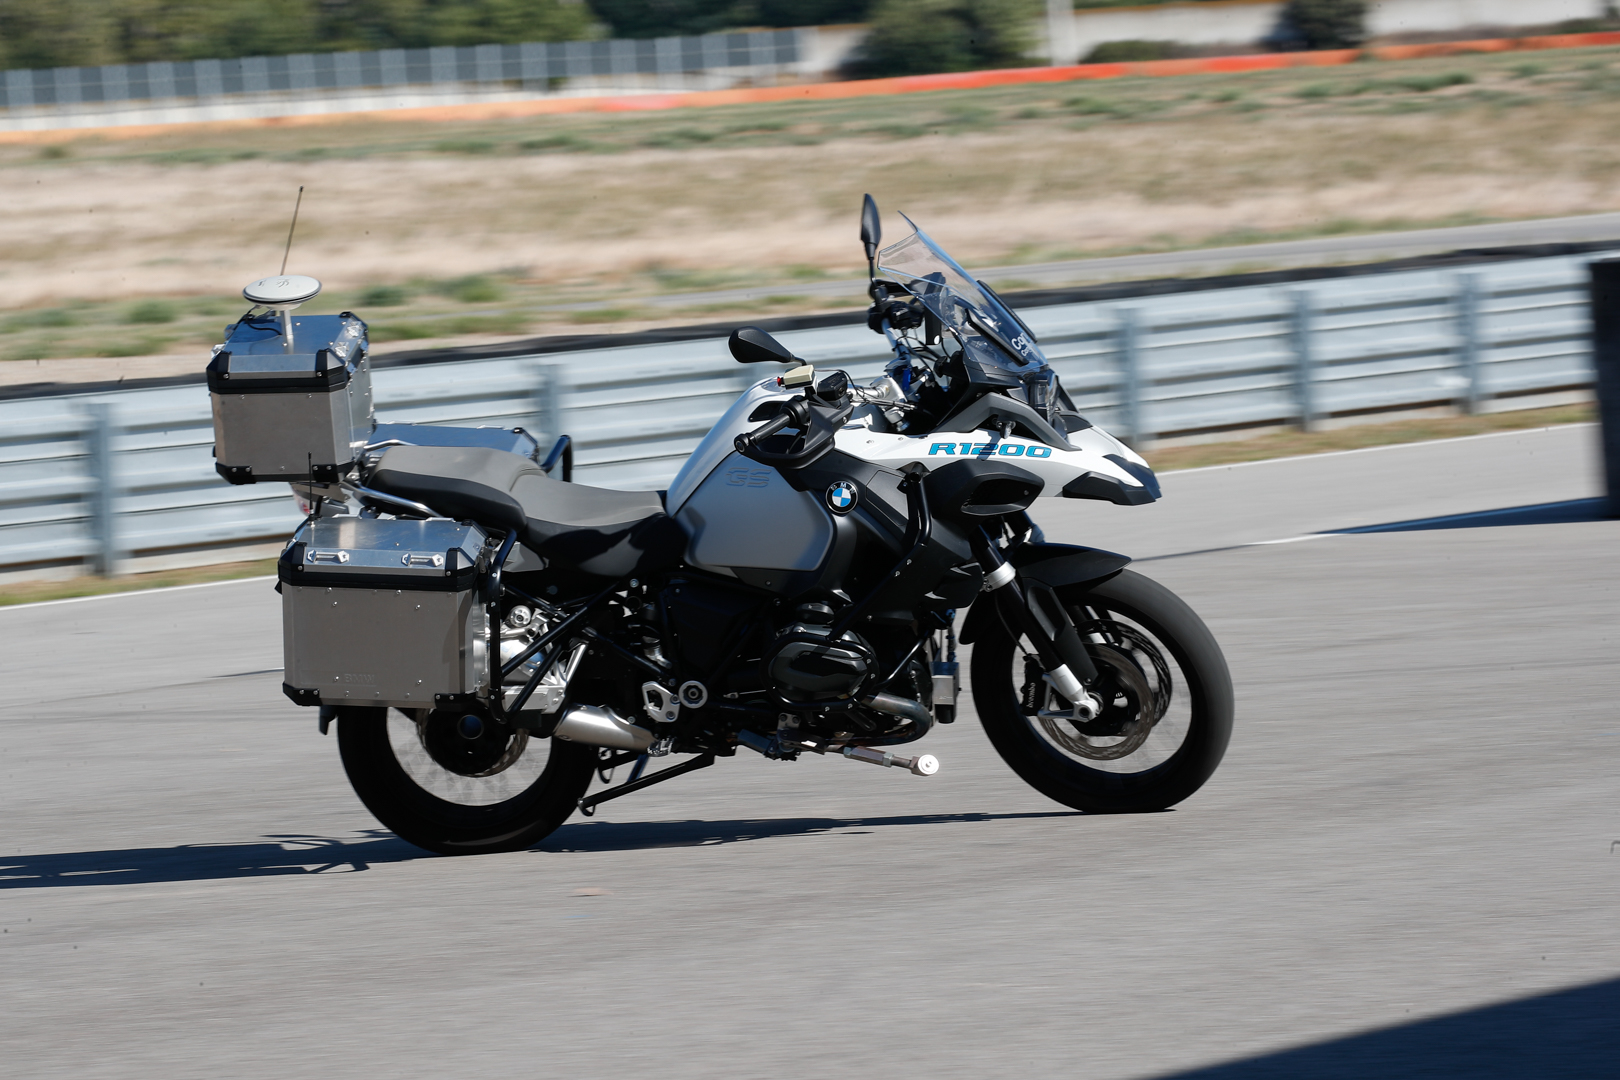 Watch BMW's self-riding motorcycle in action